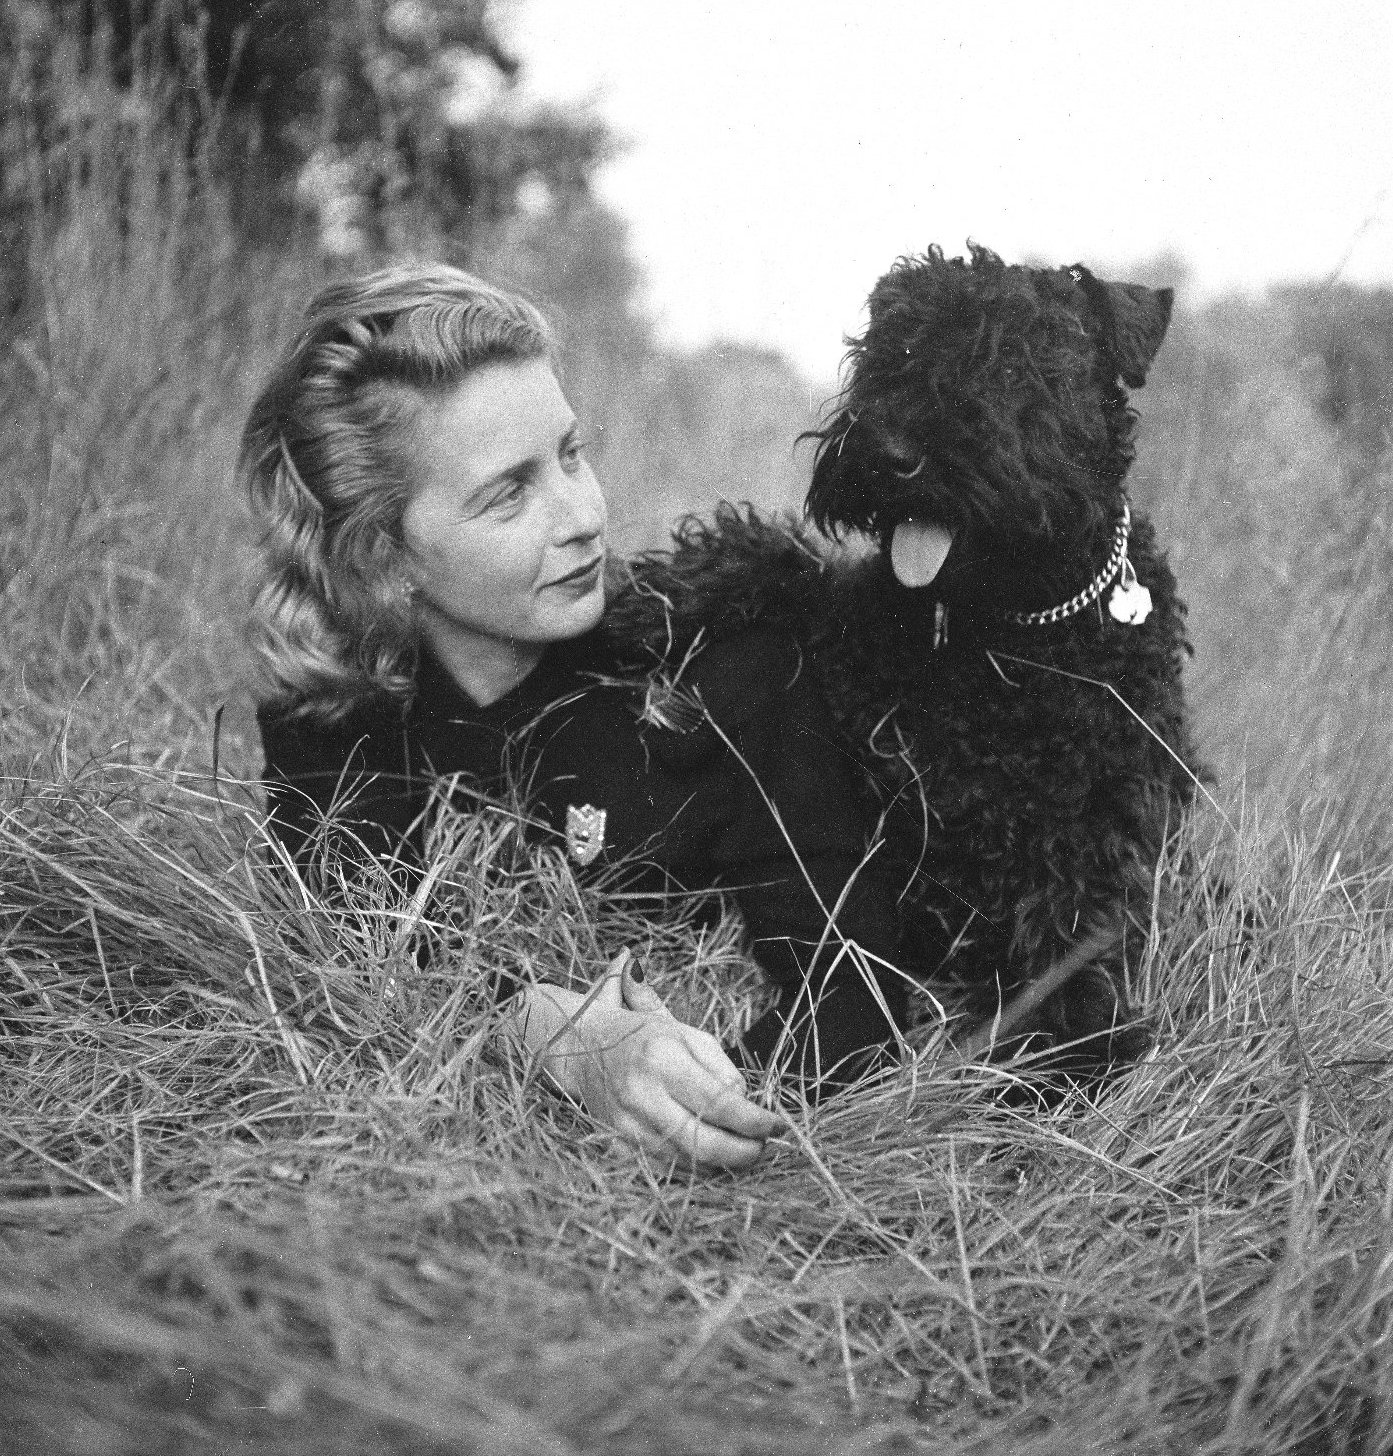 Margaret Wise Brown by Consuelo Kanaga [[Brooklyn Museum]]